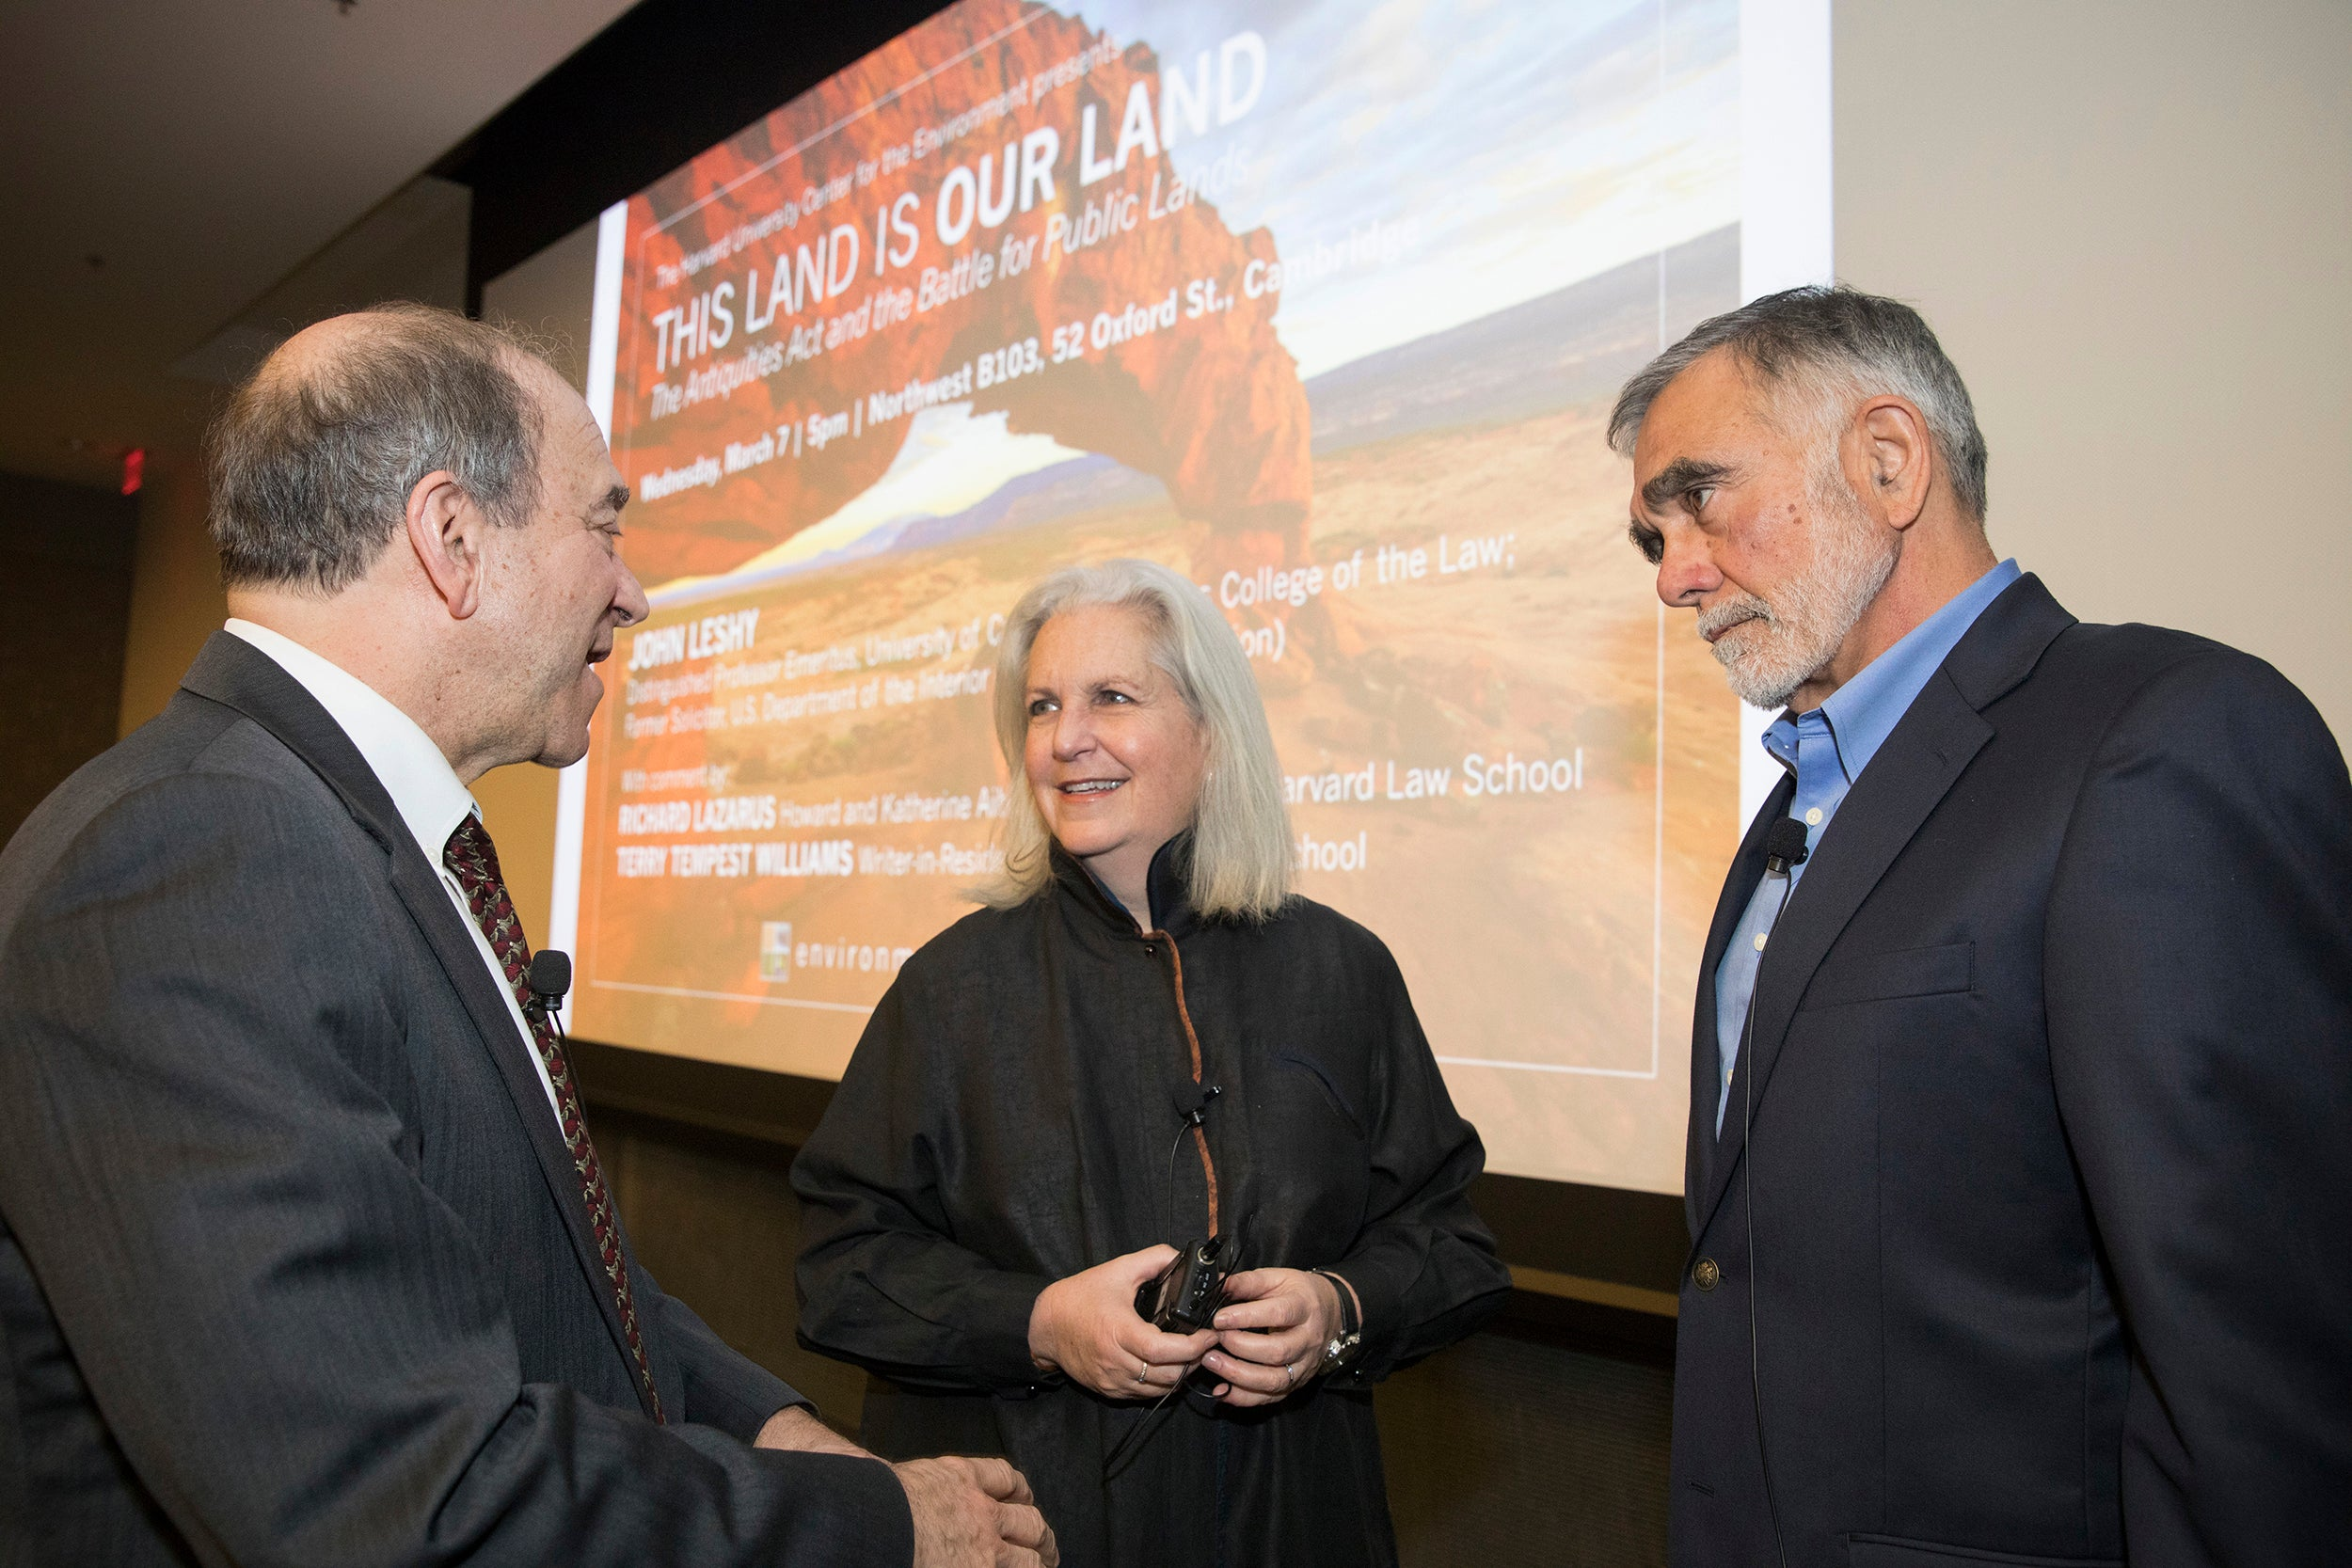 Richard Lazarus, (from left) Howard, Law Prof. HLS, Terry Tempest Williams, Writer-in-Residence, HDS and John Leshy,